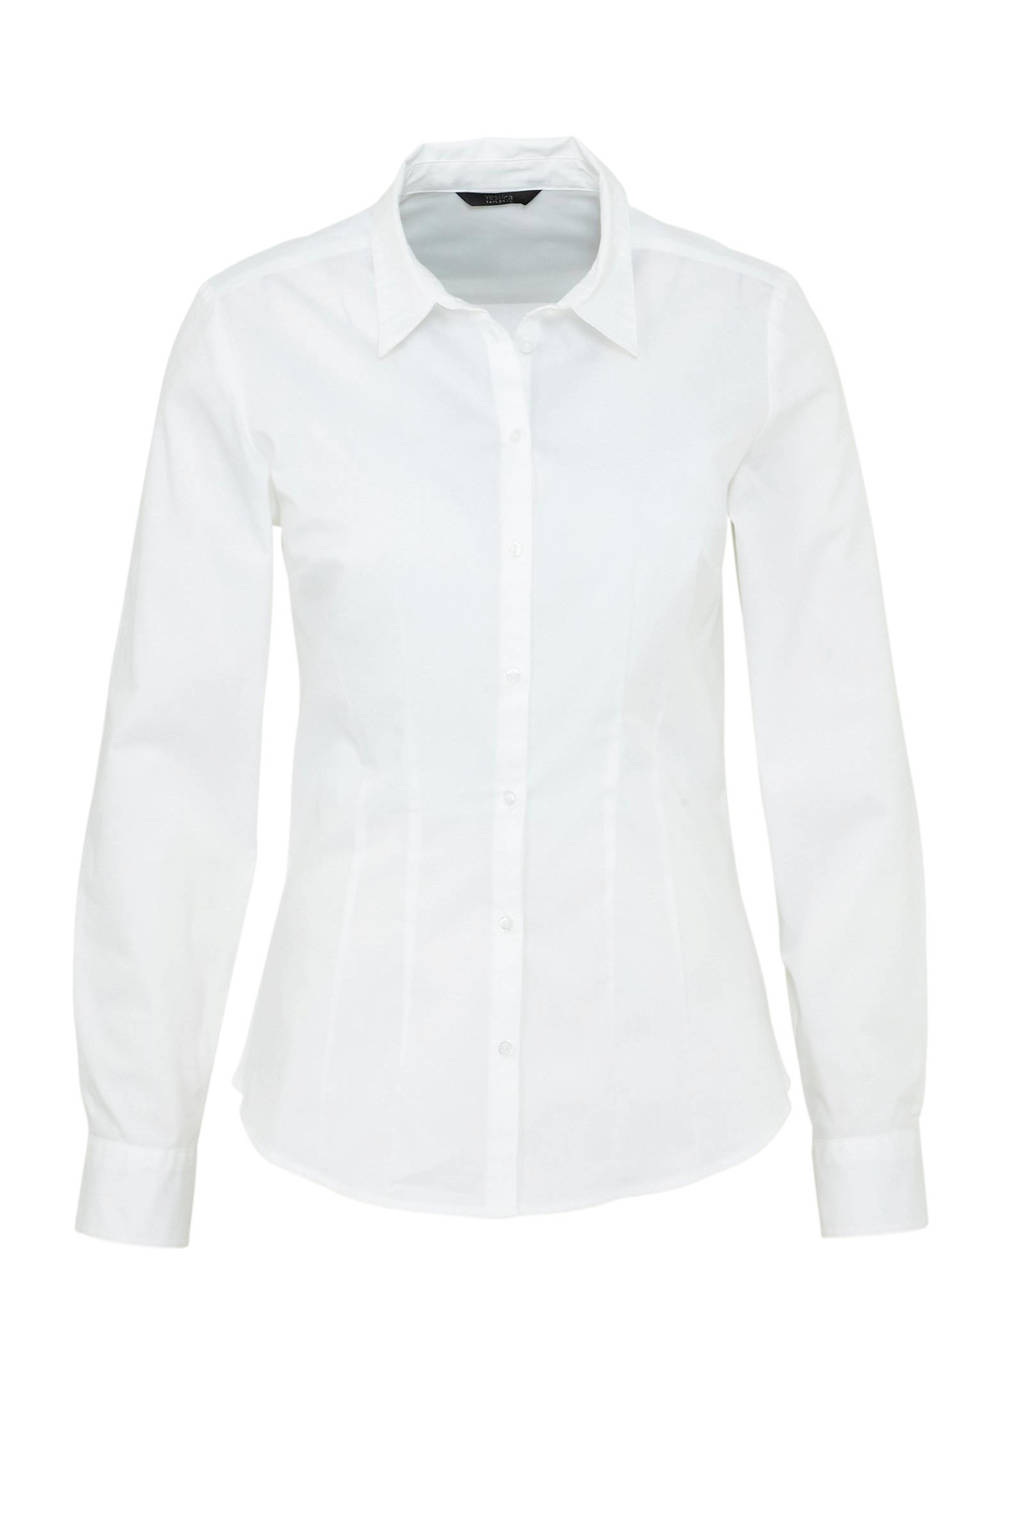 C&A Yessica blouse wit, Wit